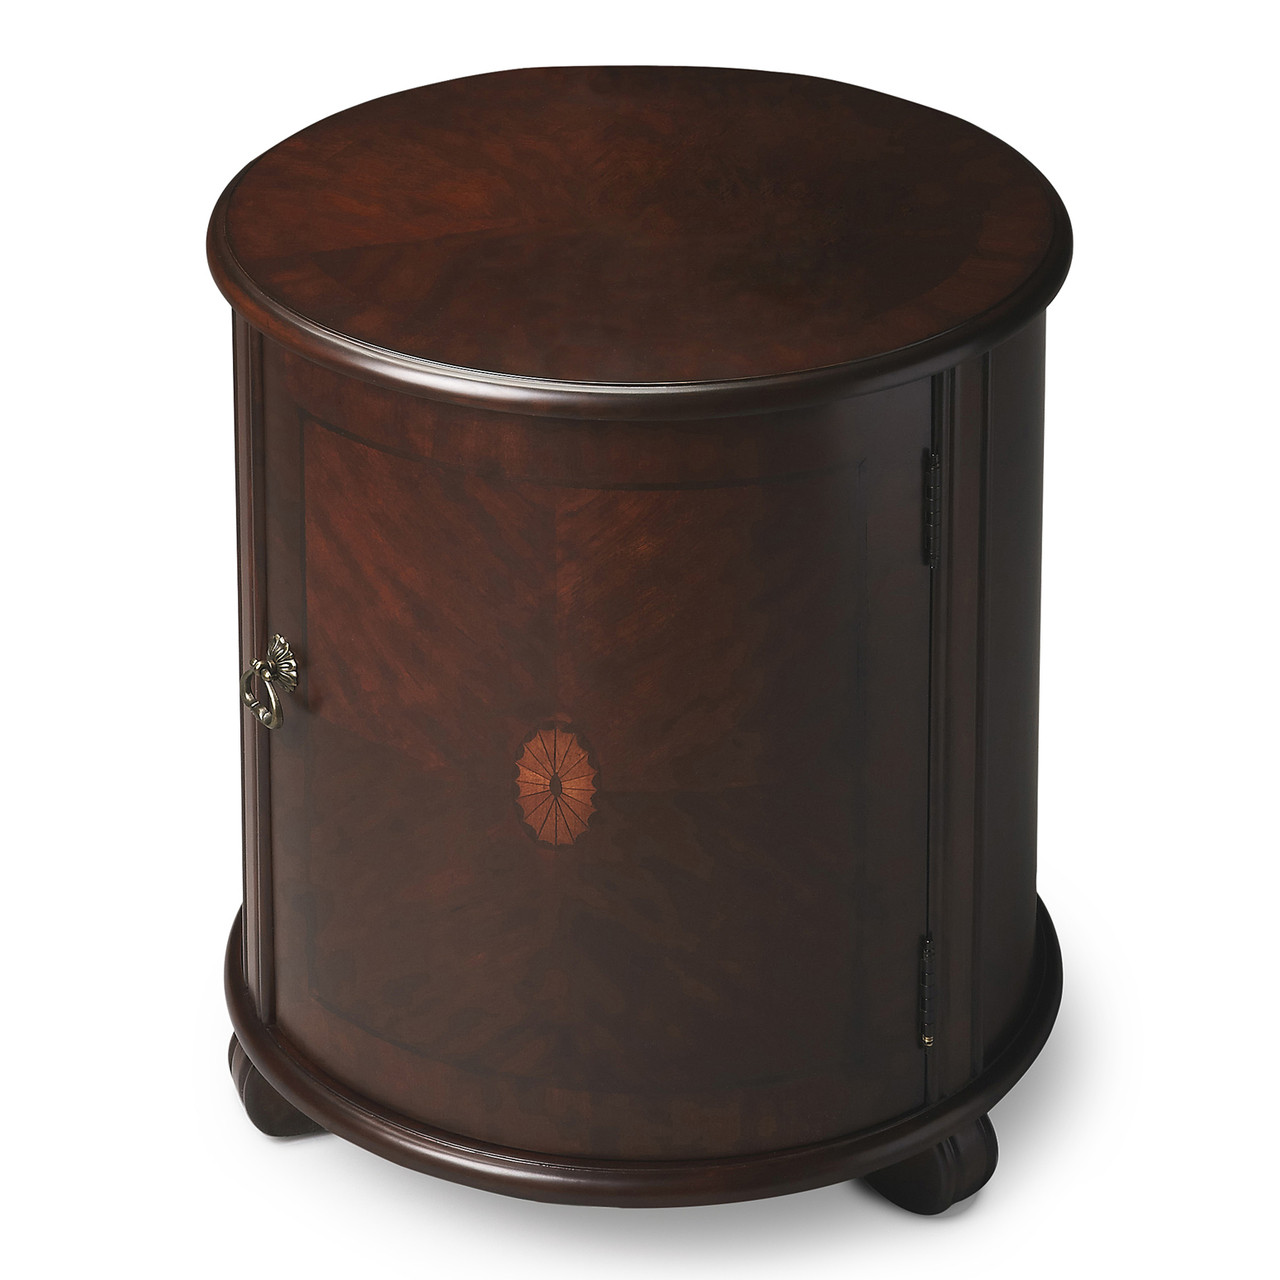 on sale 53912 bce96 RUSHCLIFFE ROUND INLAID DRUM TABLE - END TABLE - PLANTATION CHERRY FINISH -  FREE SHIPPING*